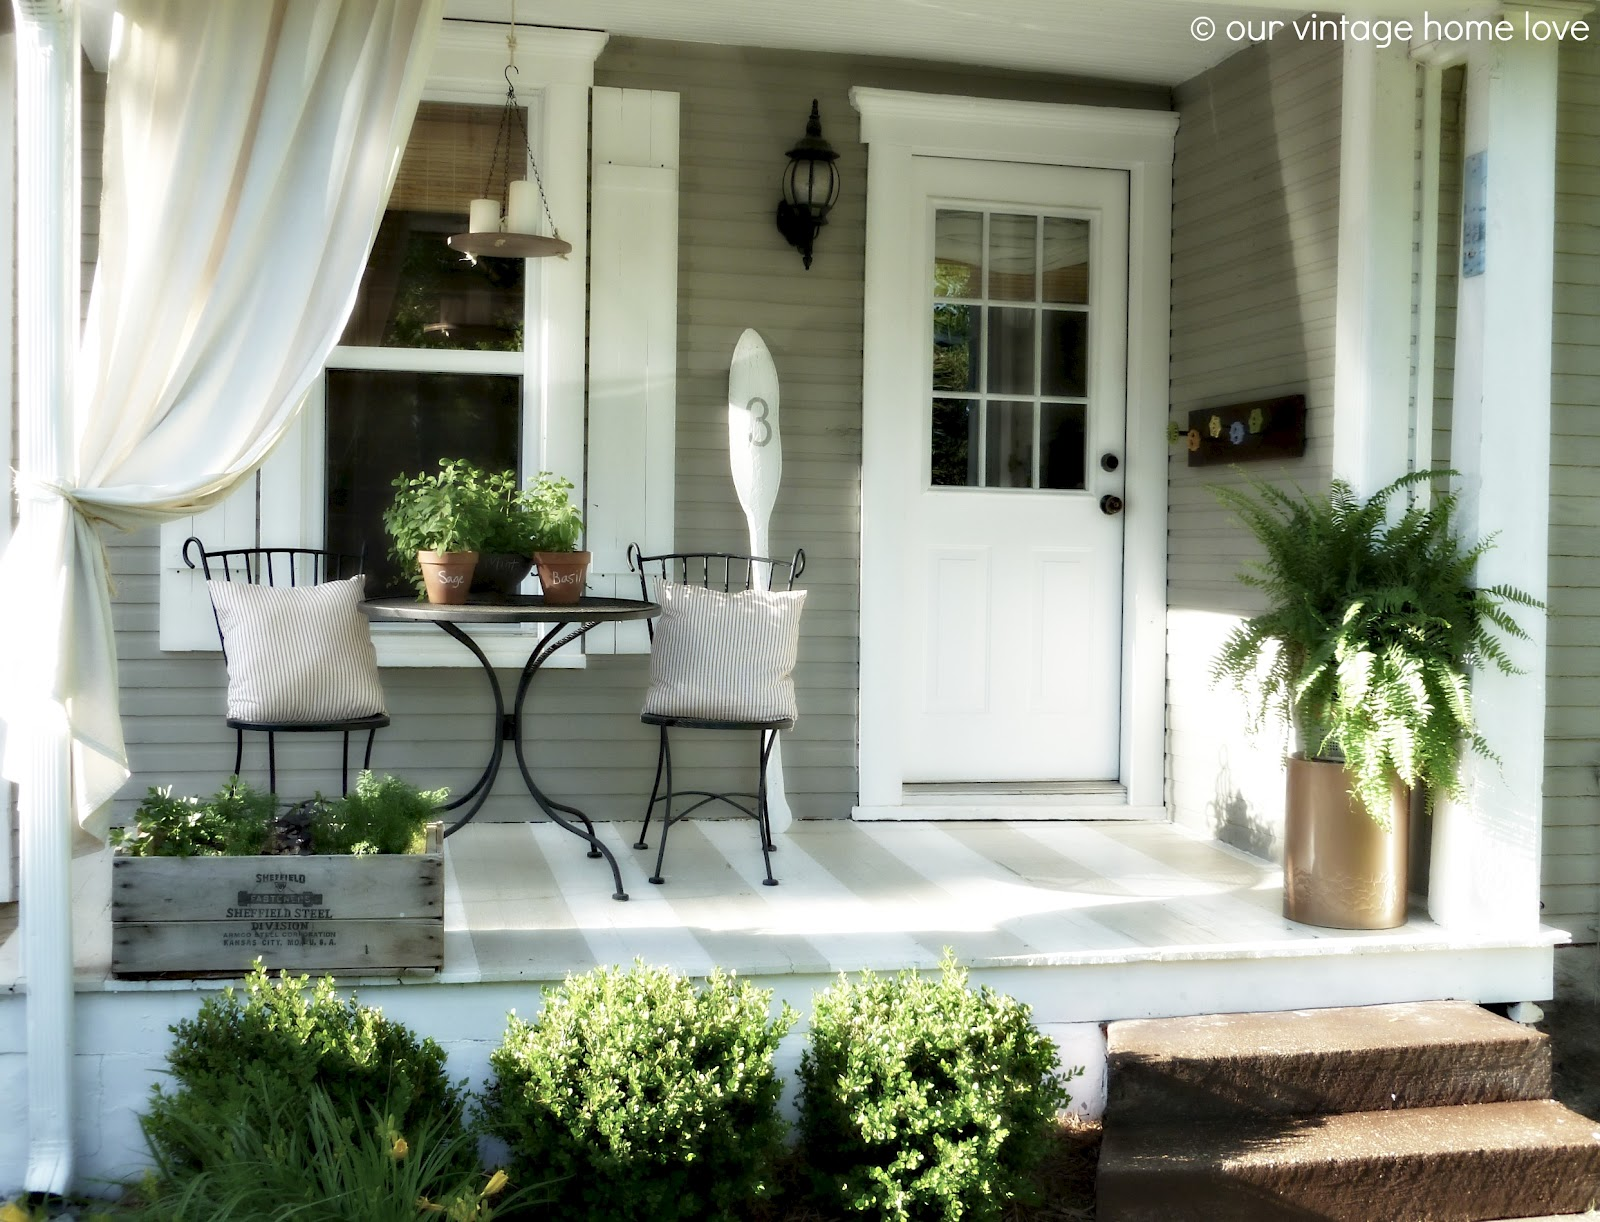 our vintage home love: Back/Side Porch Ideas For Summer and An ...